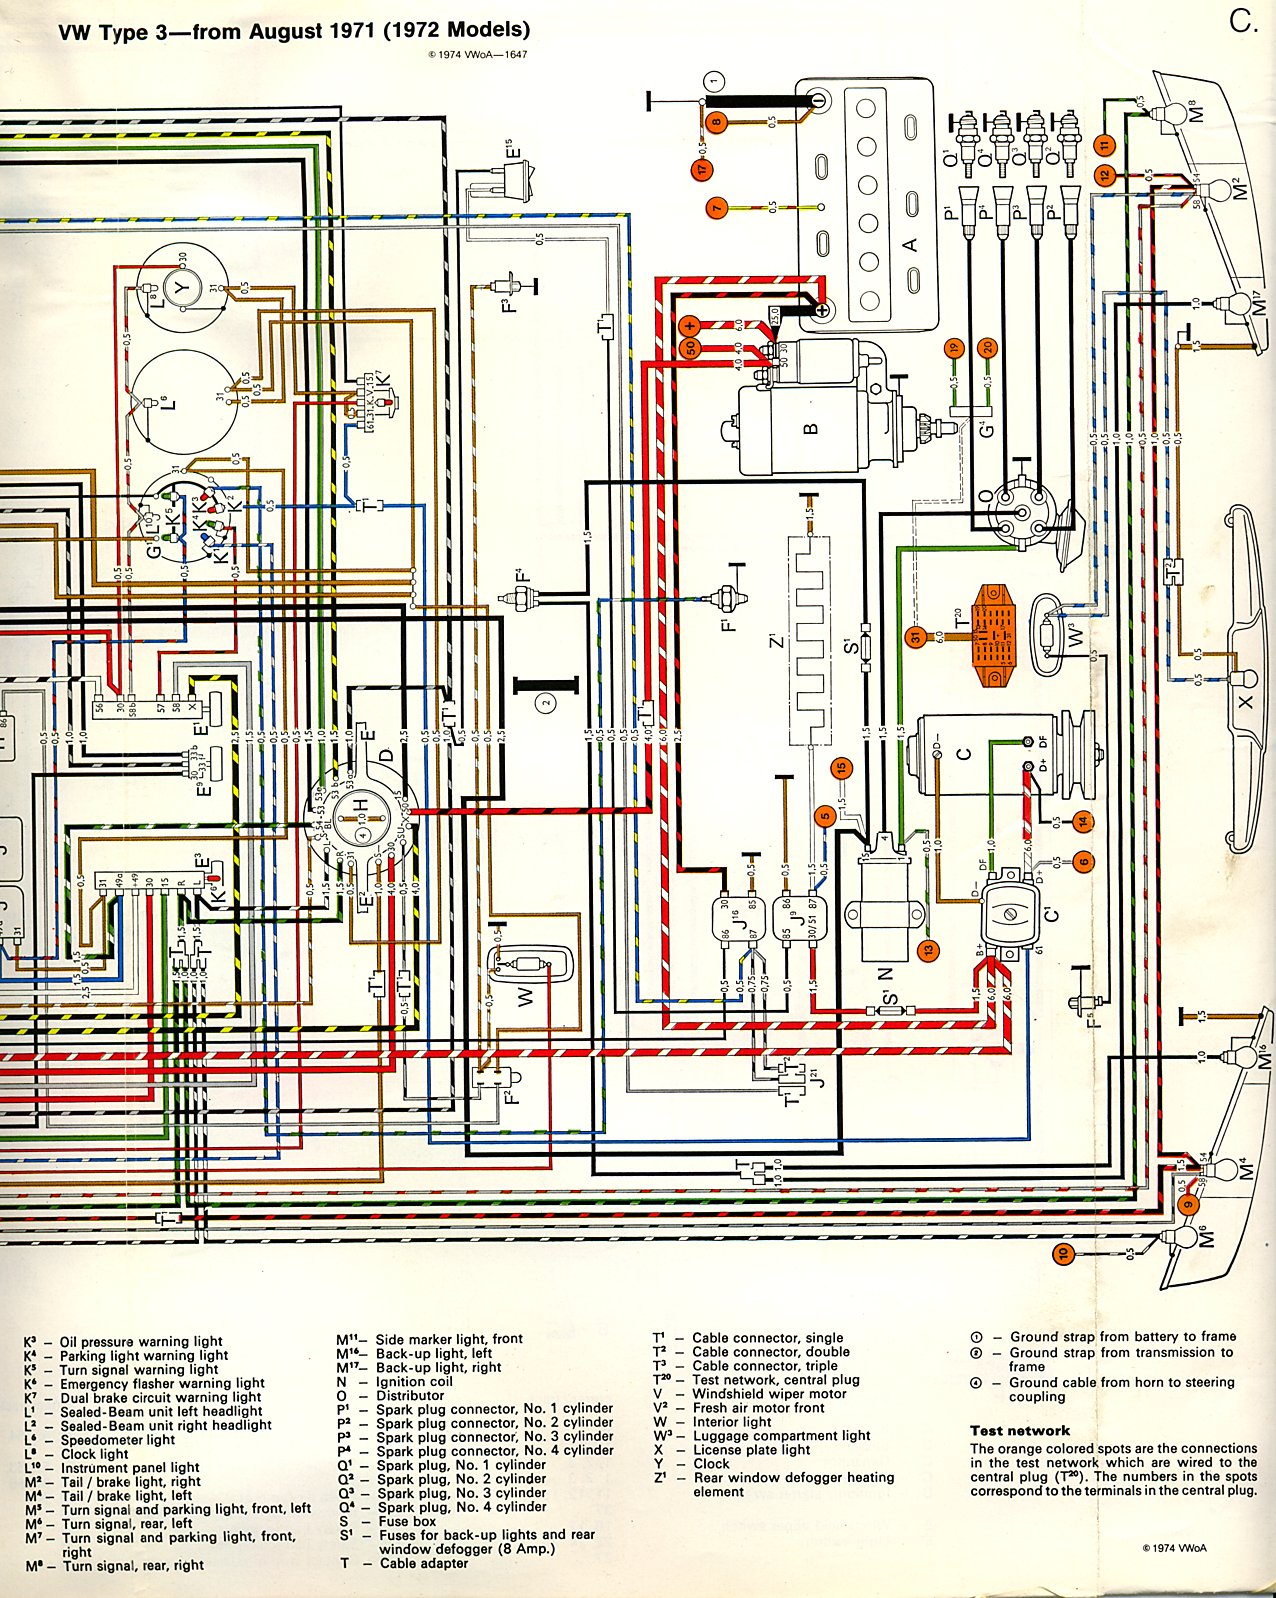 Type 3 Wiring Diagrams 1961 Vw Bug Diagram Free Download Schematic